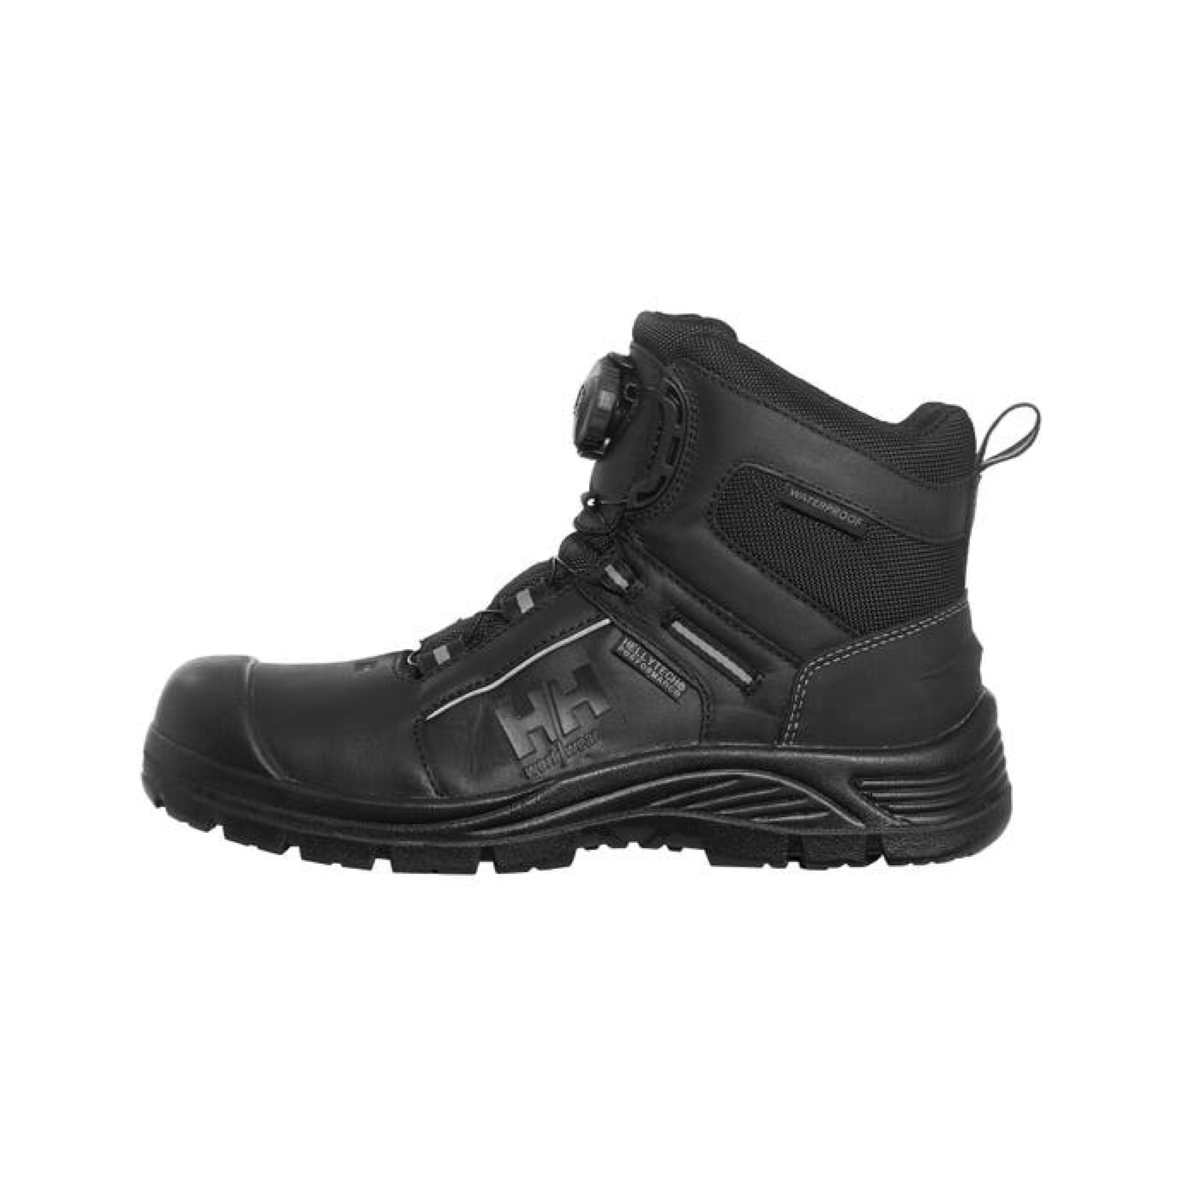 SF7825 Helly Hansen Alna BOA® Mid Height Safety Boot Side View